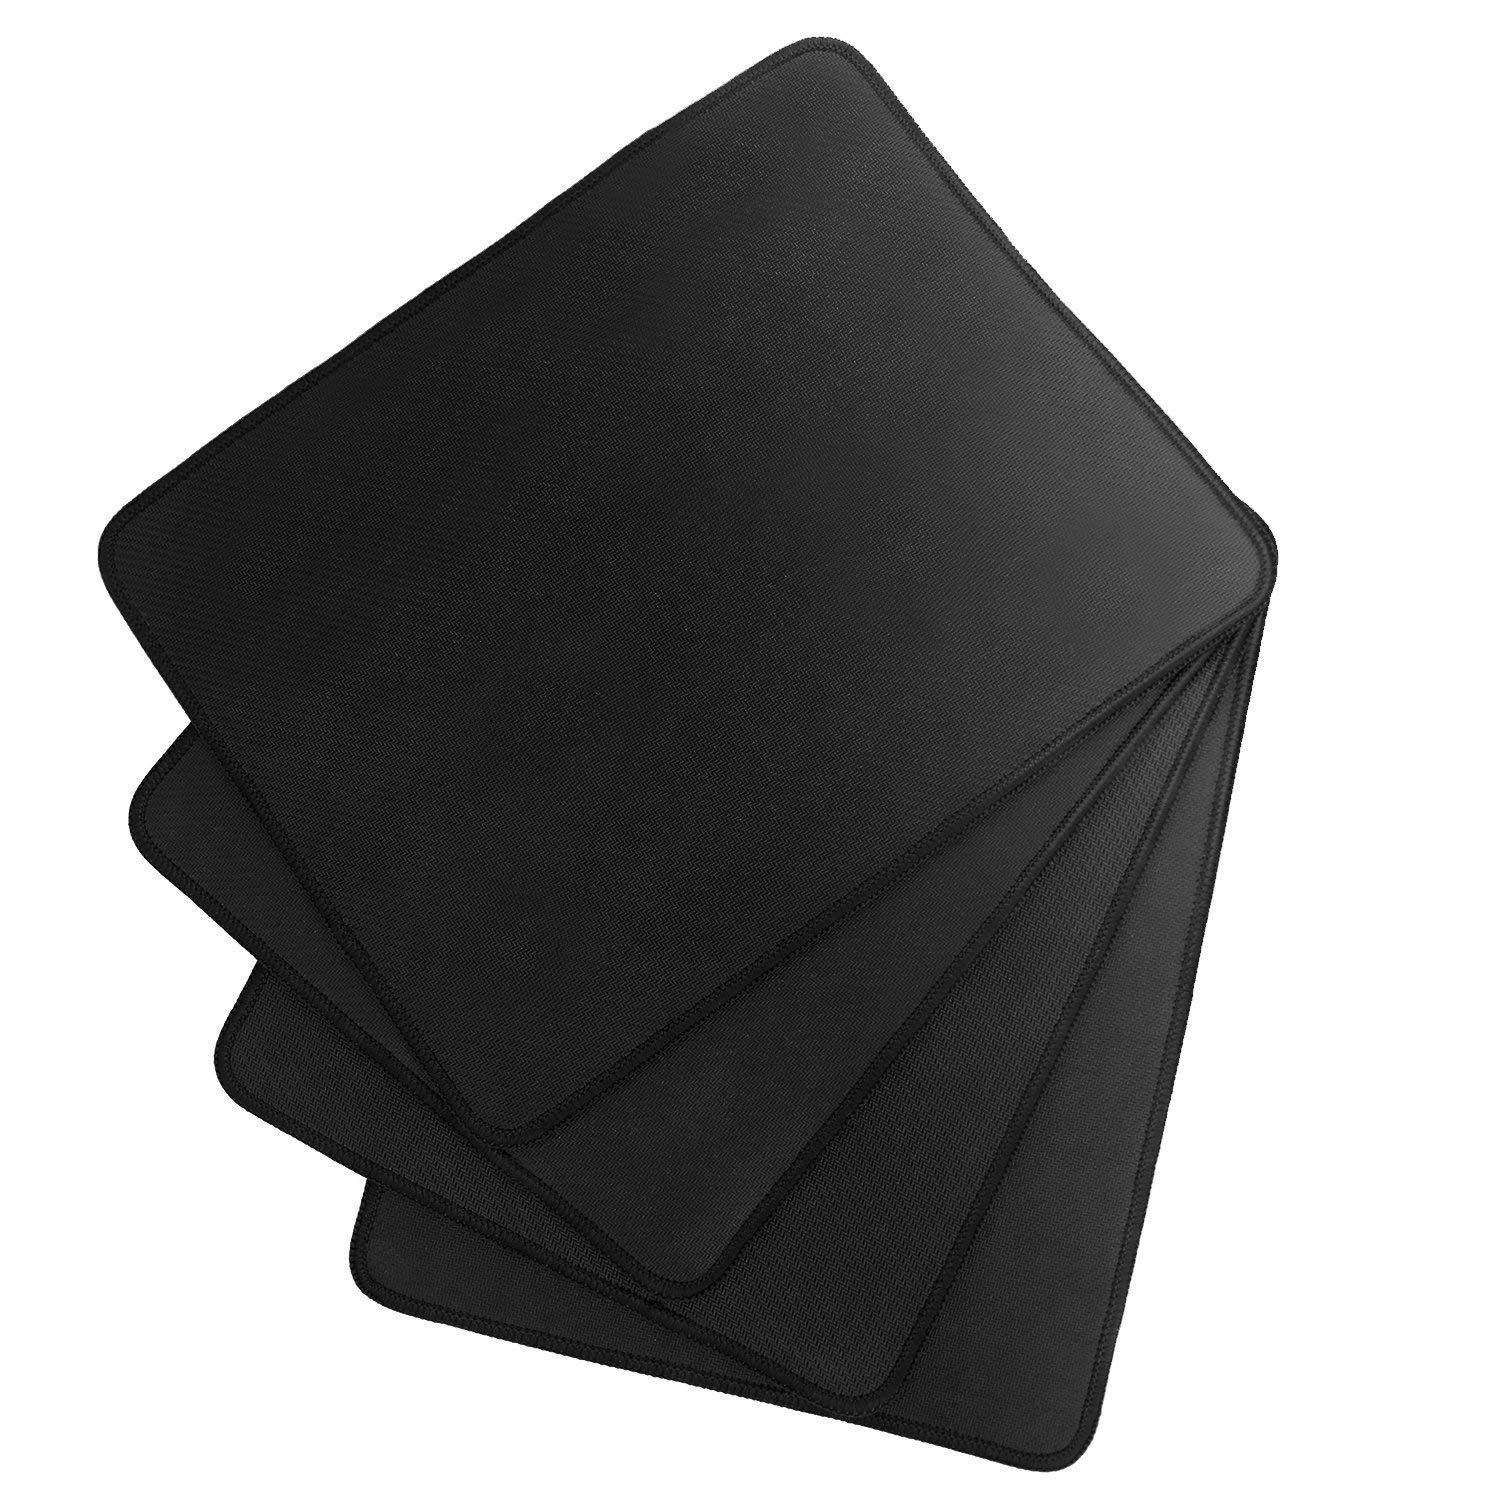 Yojoloin 25CMx30CMx2mm Thick Mouse Pad with Stitched Edges Non-Slip Rubber Base Mousepad for Laptop Computer /& PC 11 x 8.7 inches Premium-Textured Mouse Mat Pad Black,Rubber Base 4 PCS